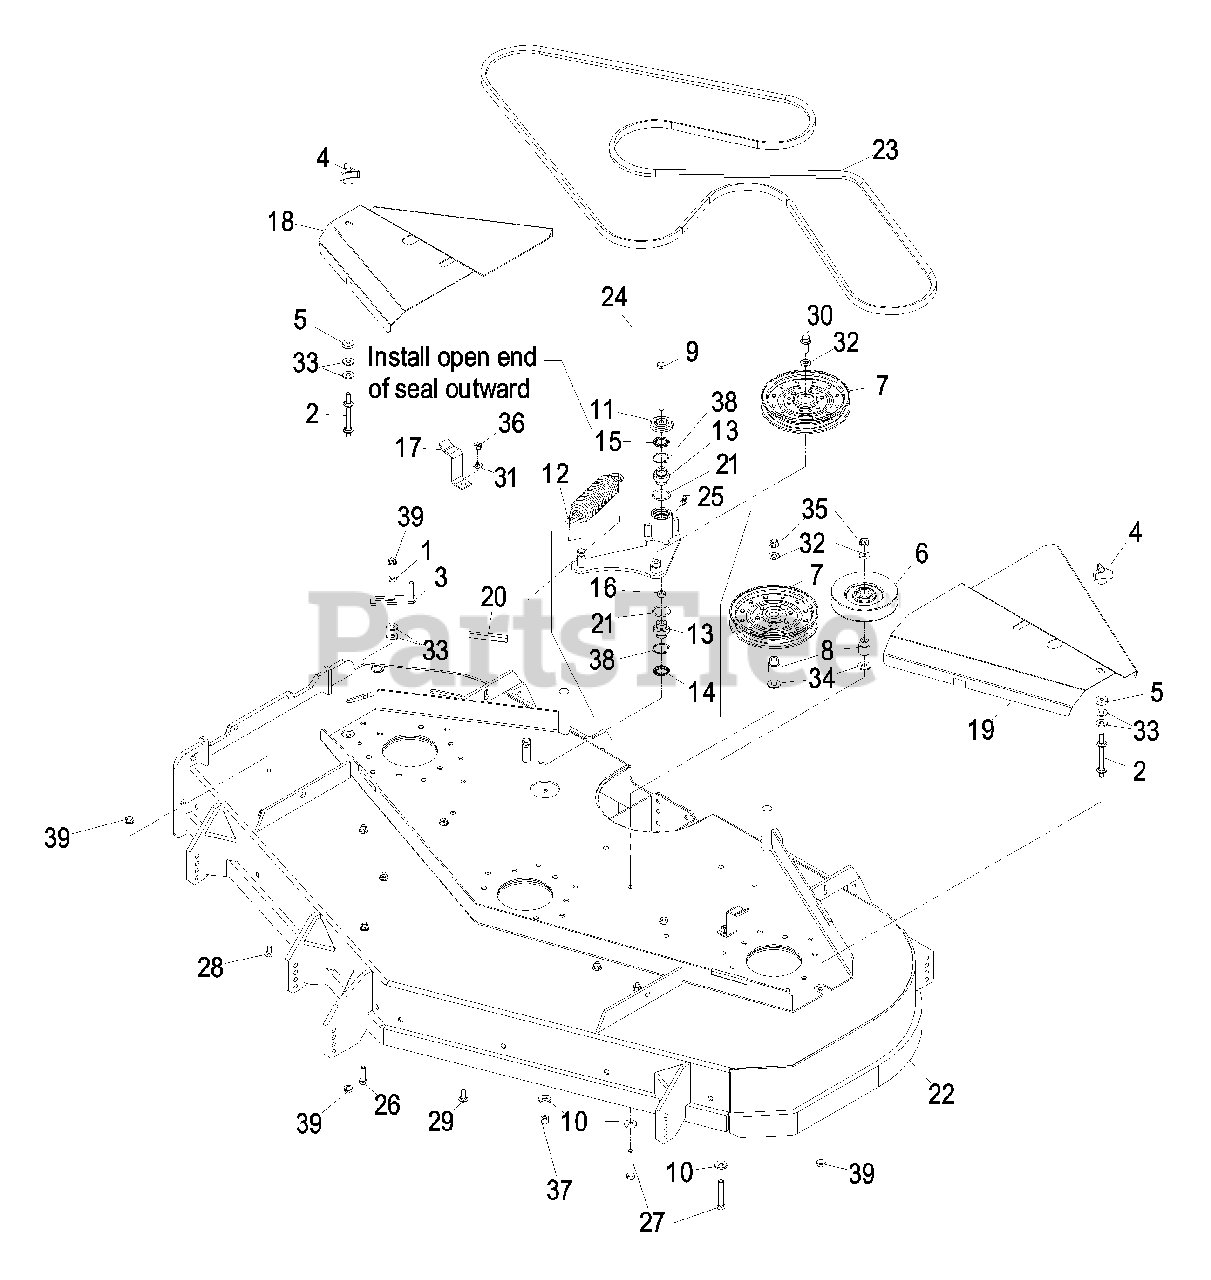 Exmark Parts on the Deck Group Diagram for LXS35BV725